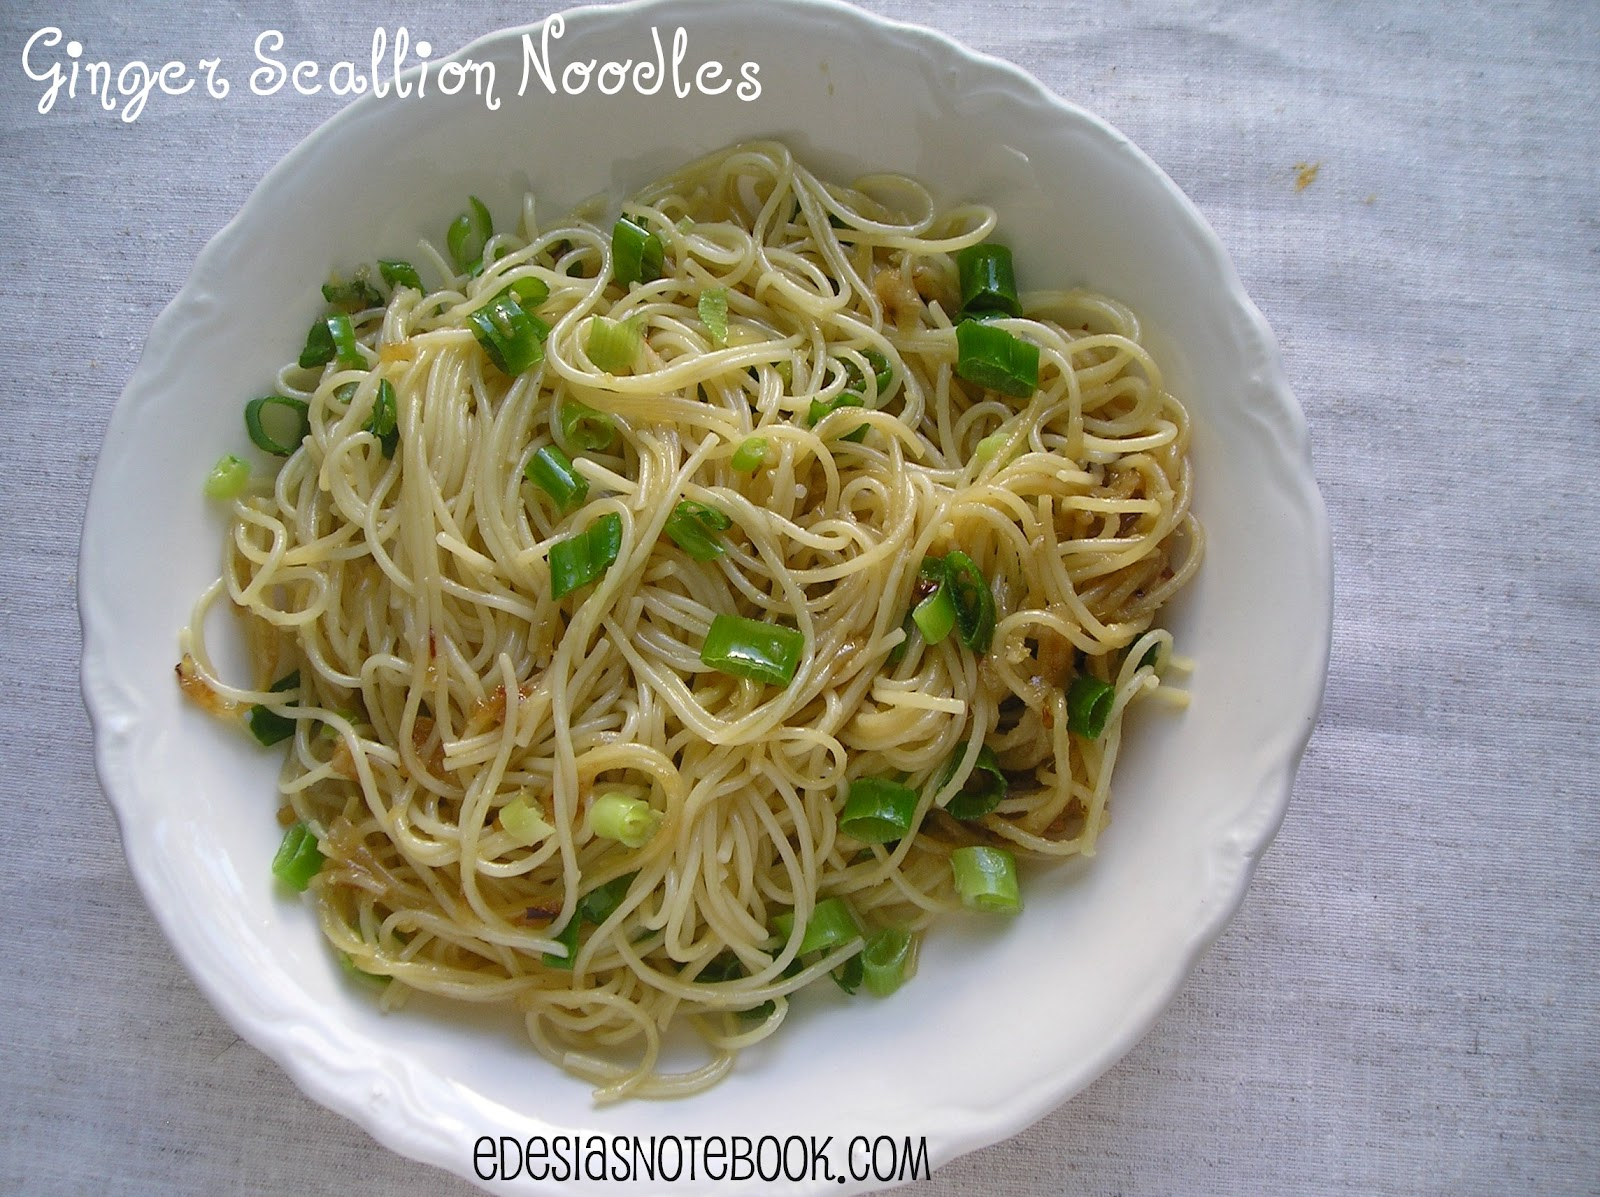 Ginger Scallion Noodles ~ Edesia's Notebook